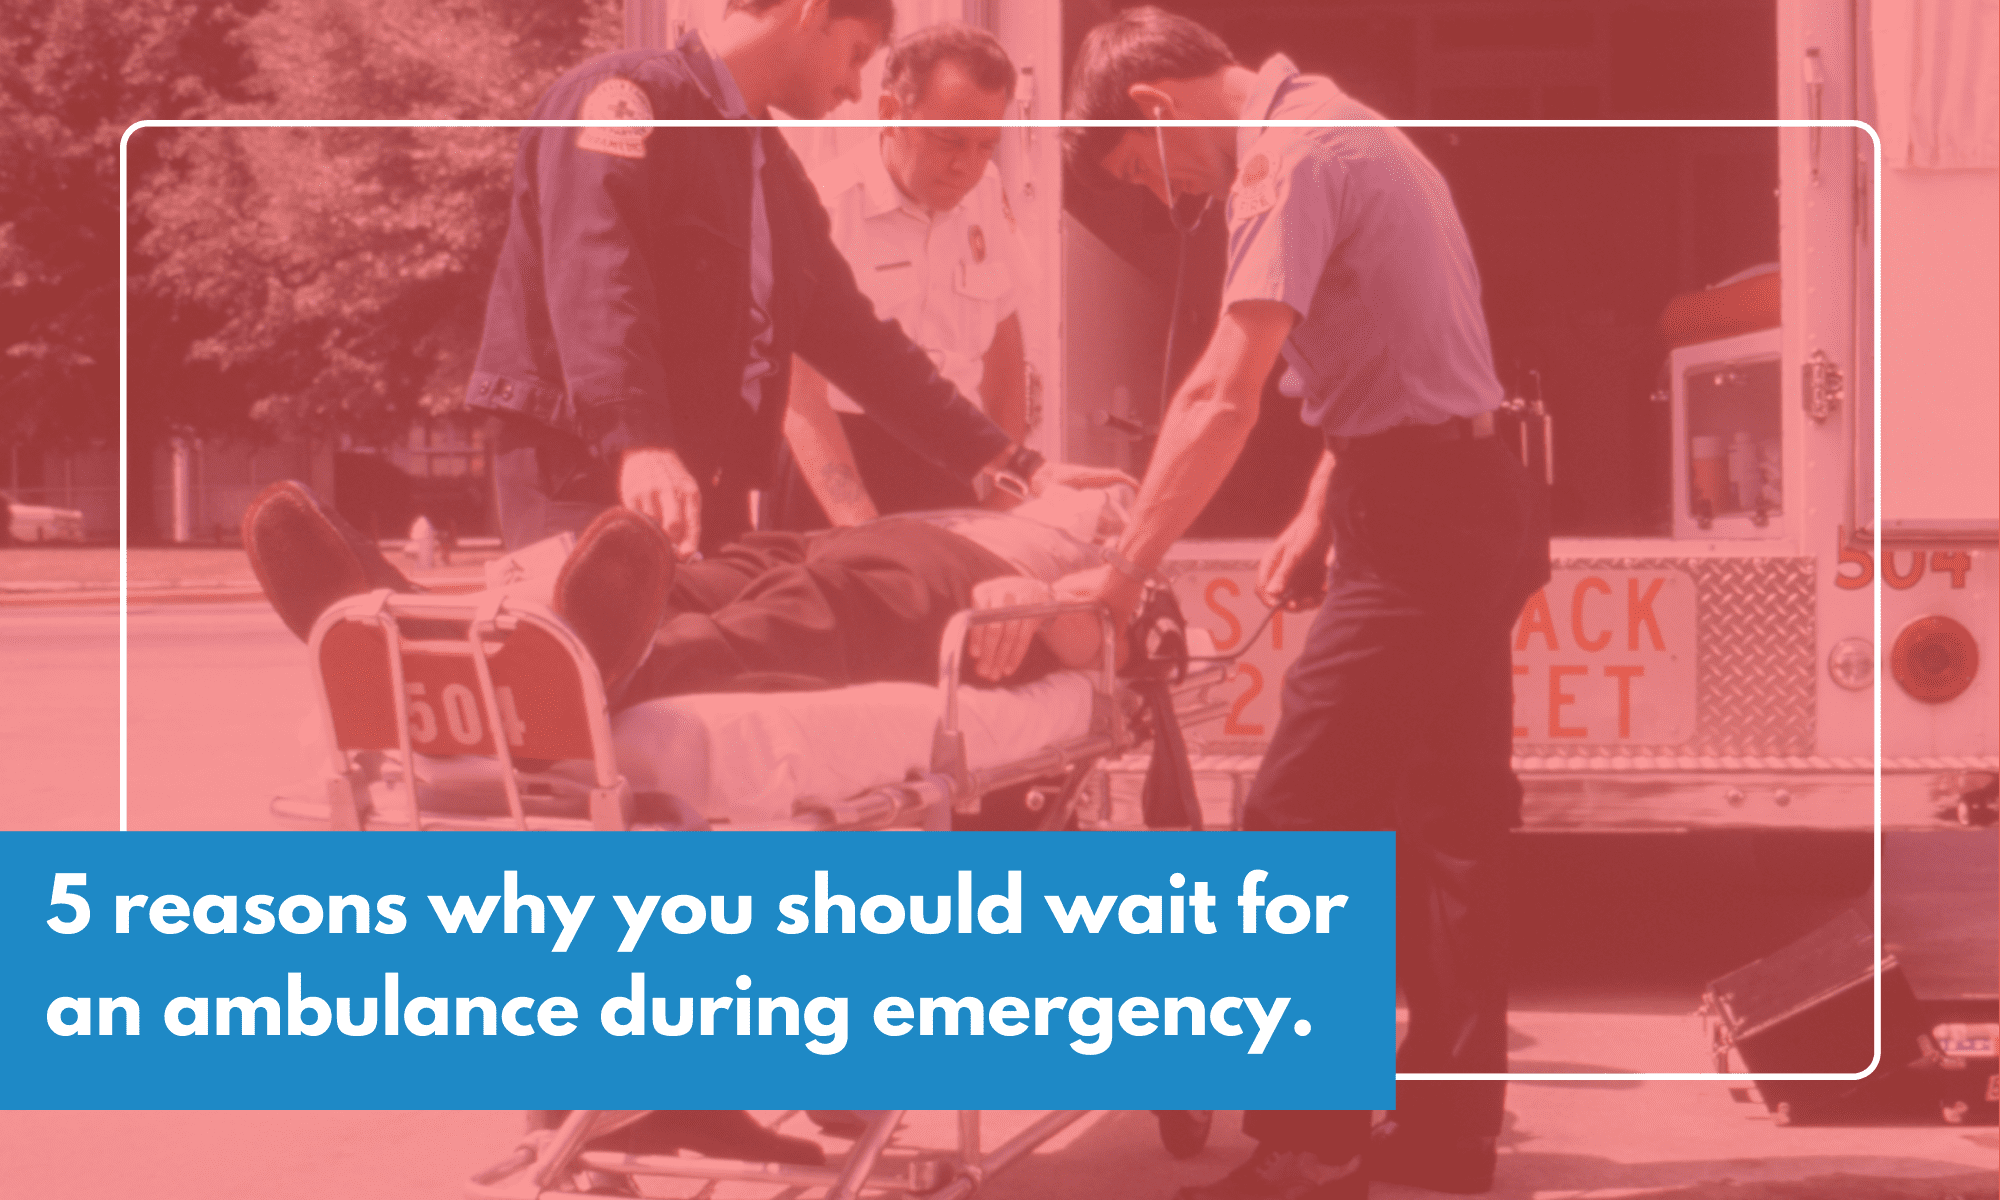 reasons why you should wait for an ambulance during emergency